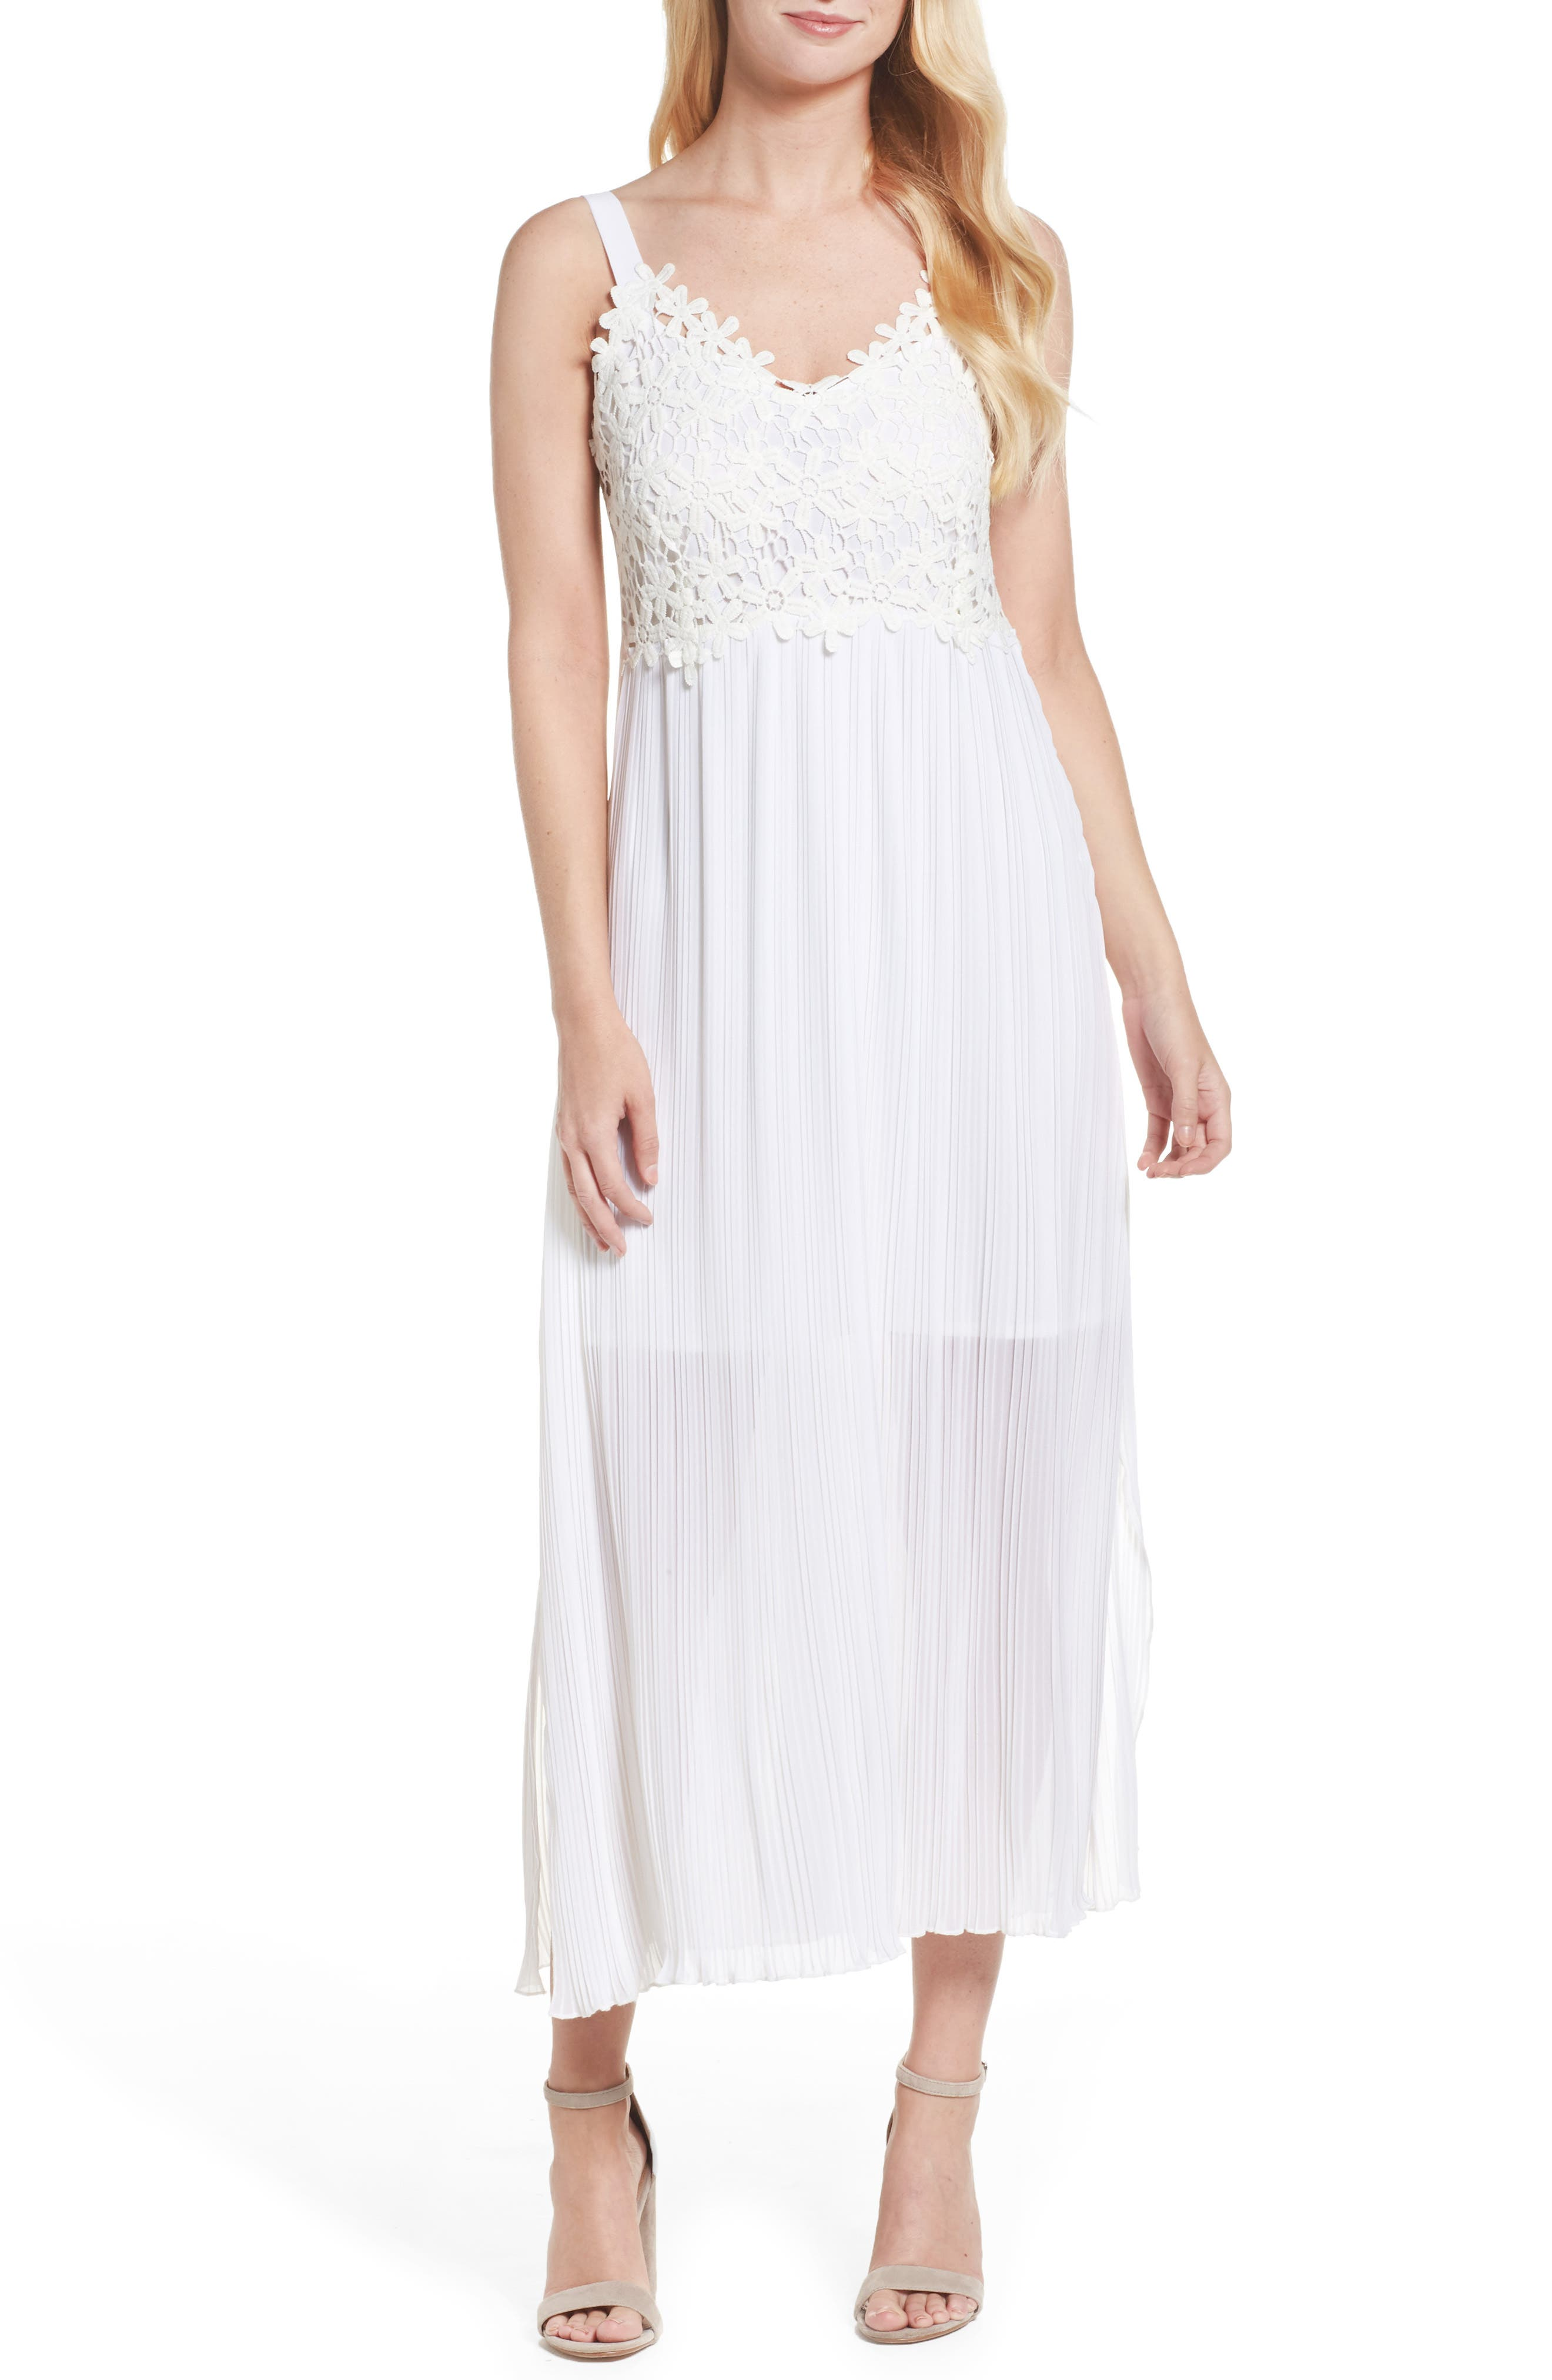 French Coonection Posy Lace Midi Dress,                         Main,                         color, 101